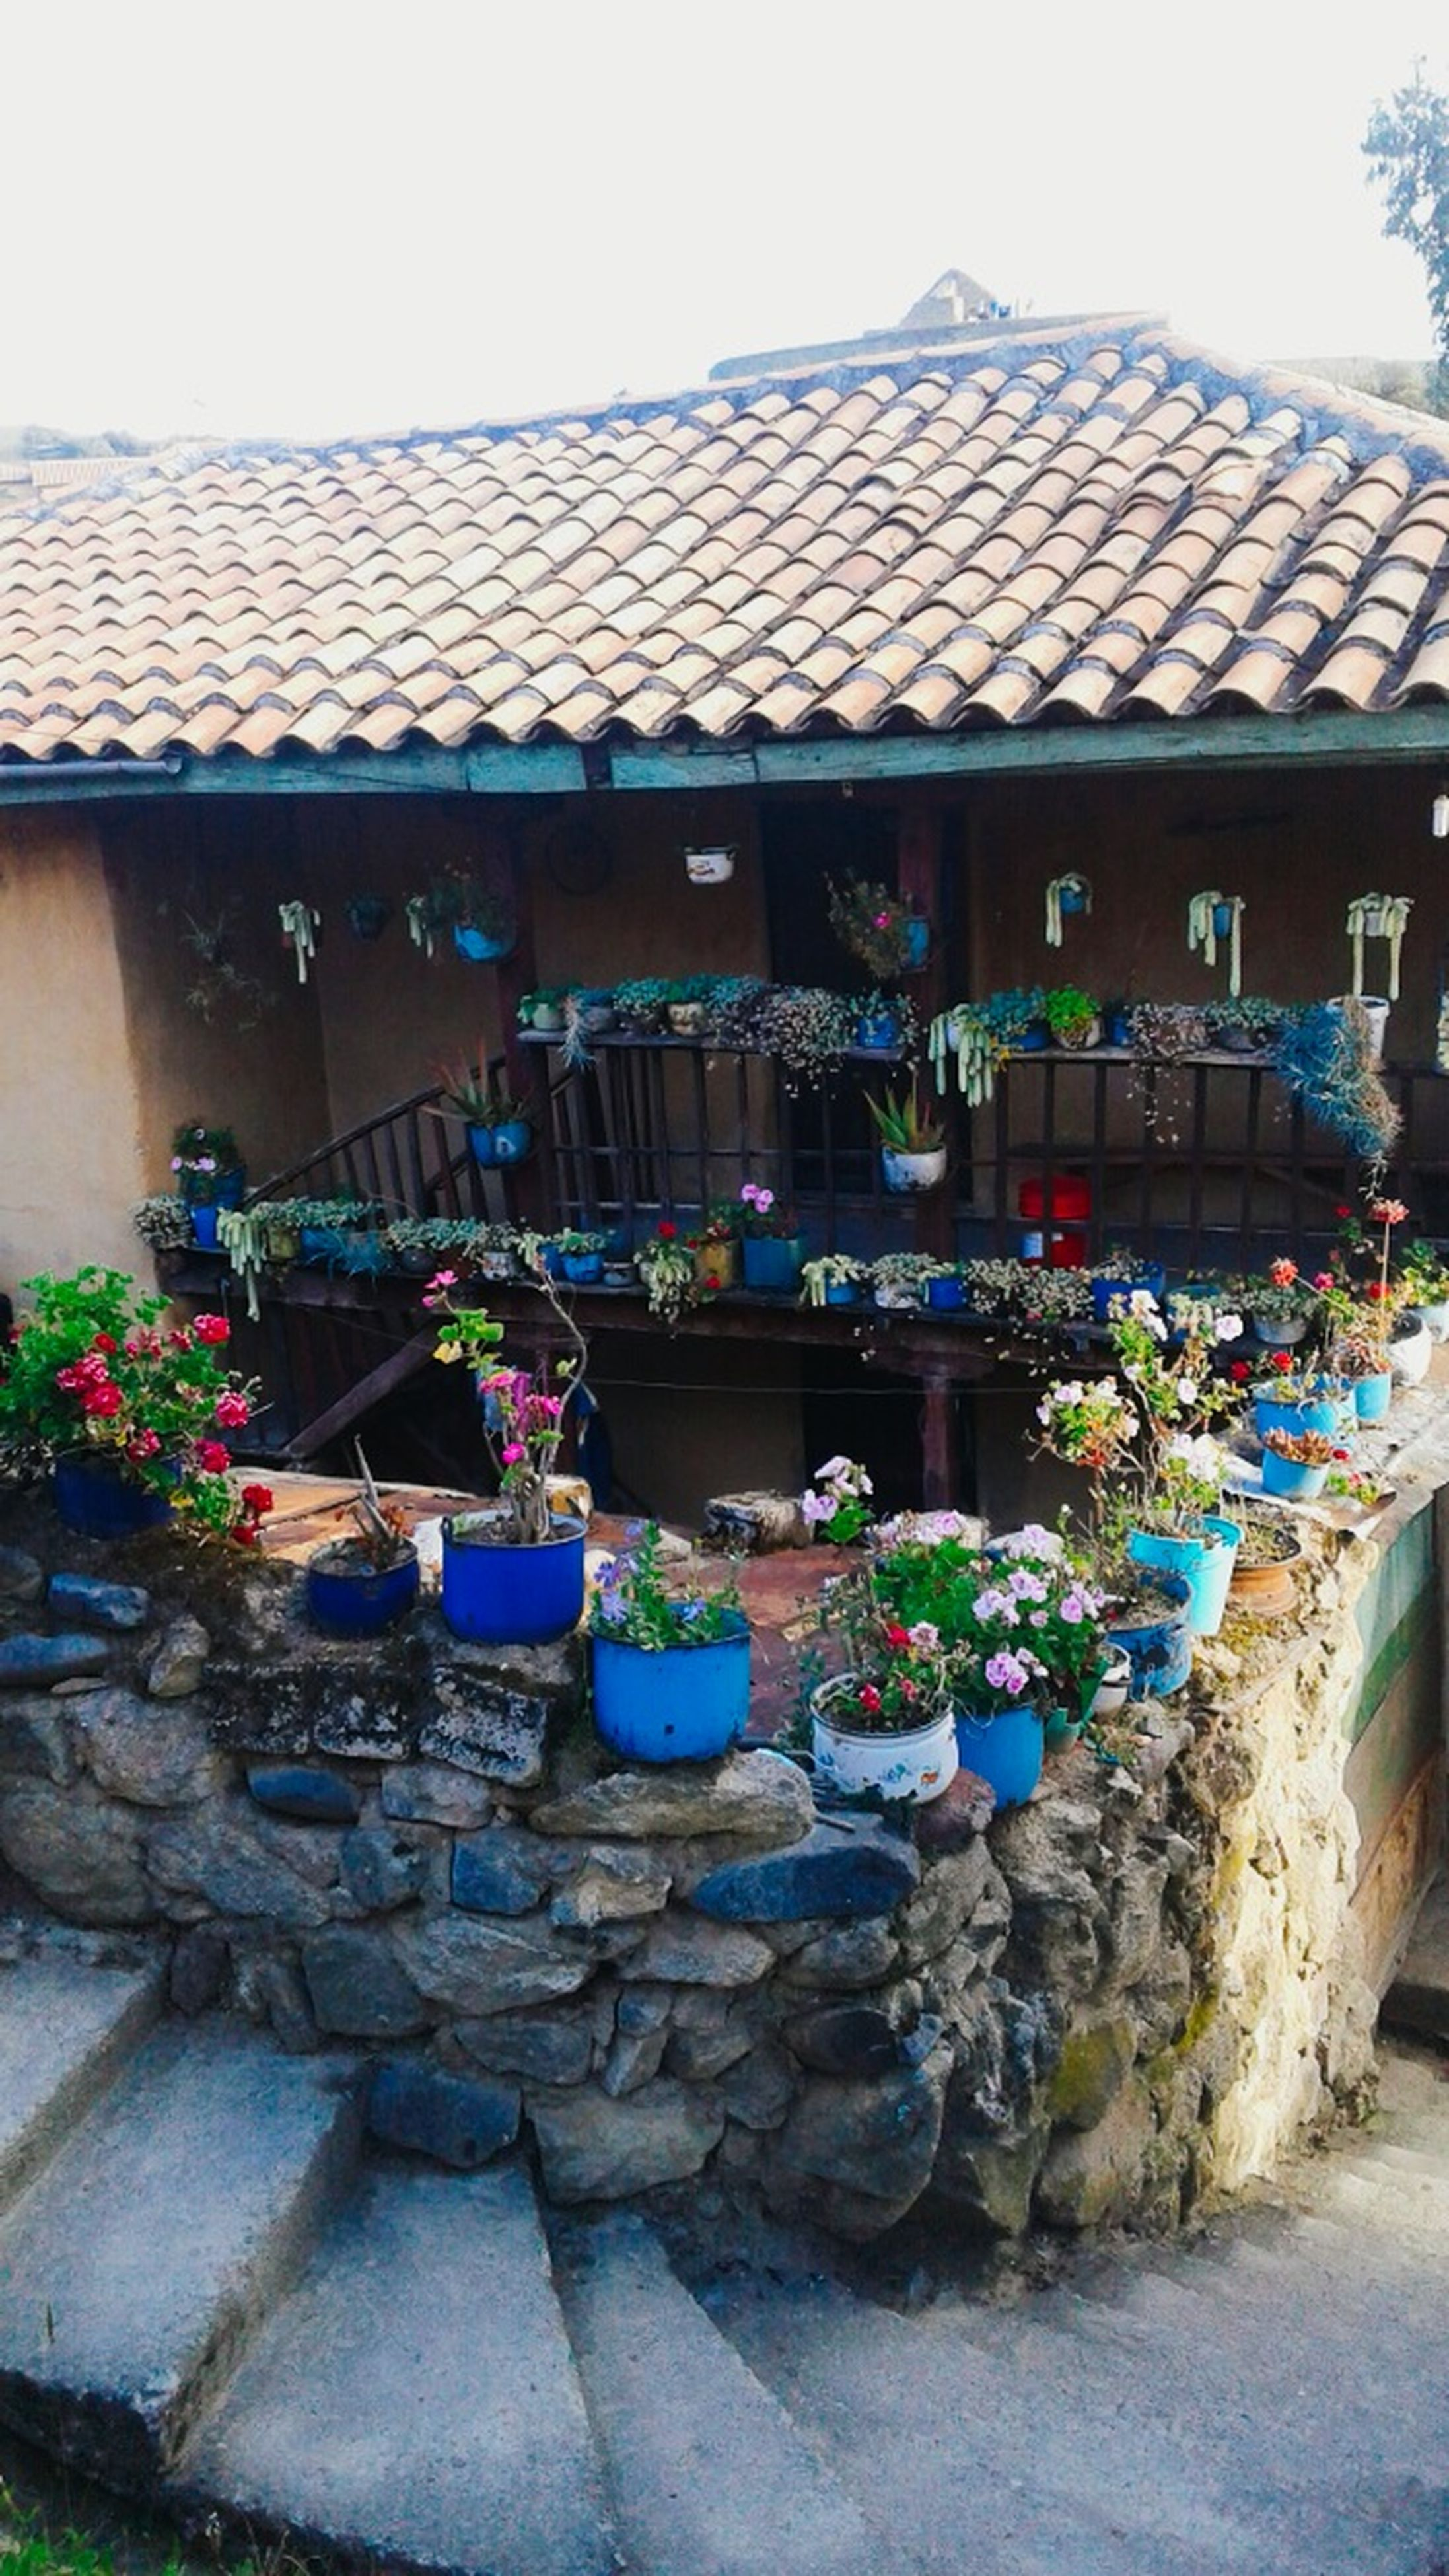 built structure, building exterior, architecture, flower, plant, potted plant, house, roof, variation, religion, retail, day, multi colored, outdoors, freshness, flower shop, no people, fragility, outside